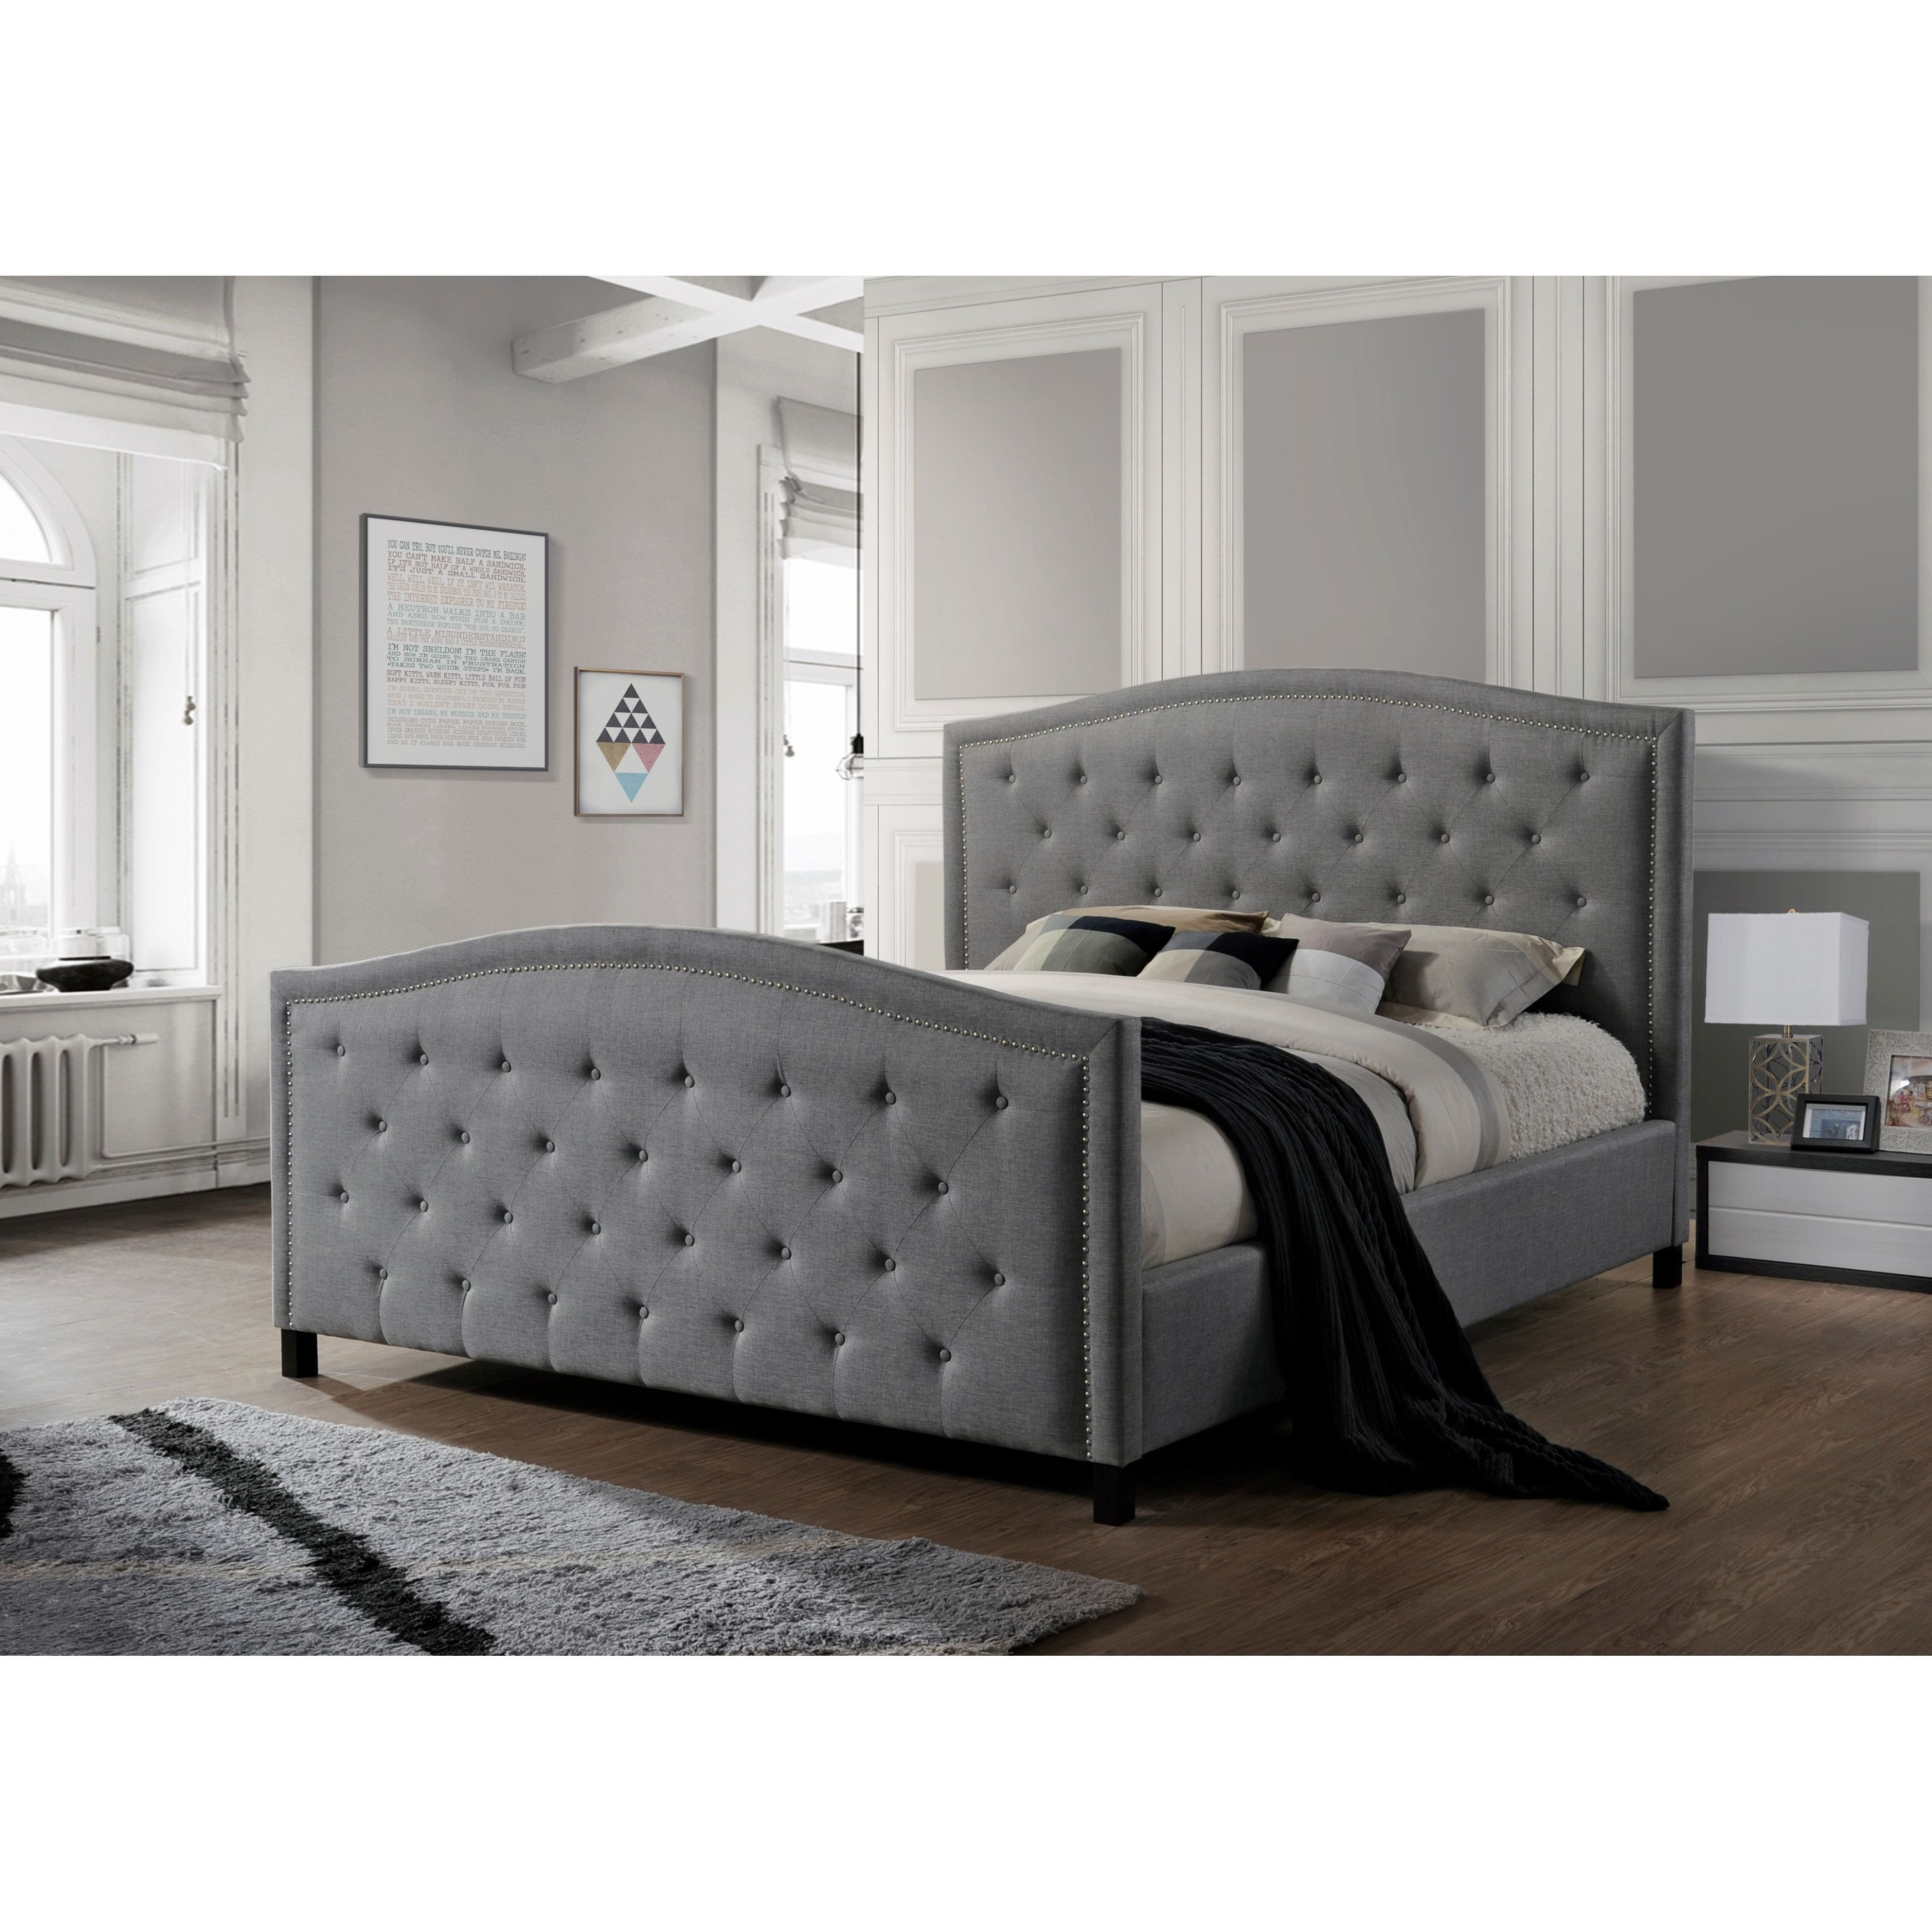 Online Shopping Bedding Furniture Electronics Jewelry Clothing More Grey Upholstered Bed Furniture Panel Bed